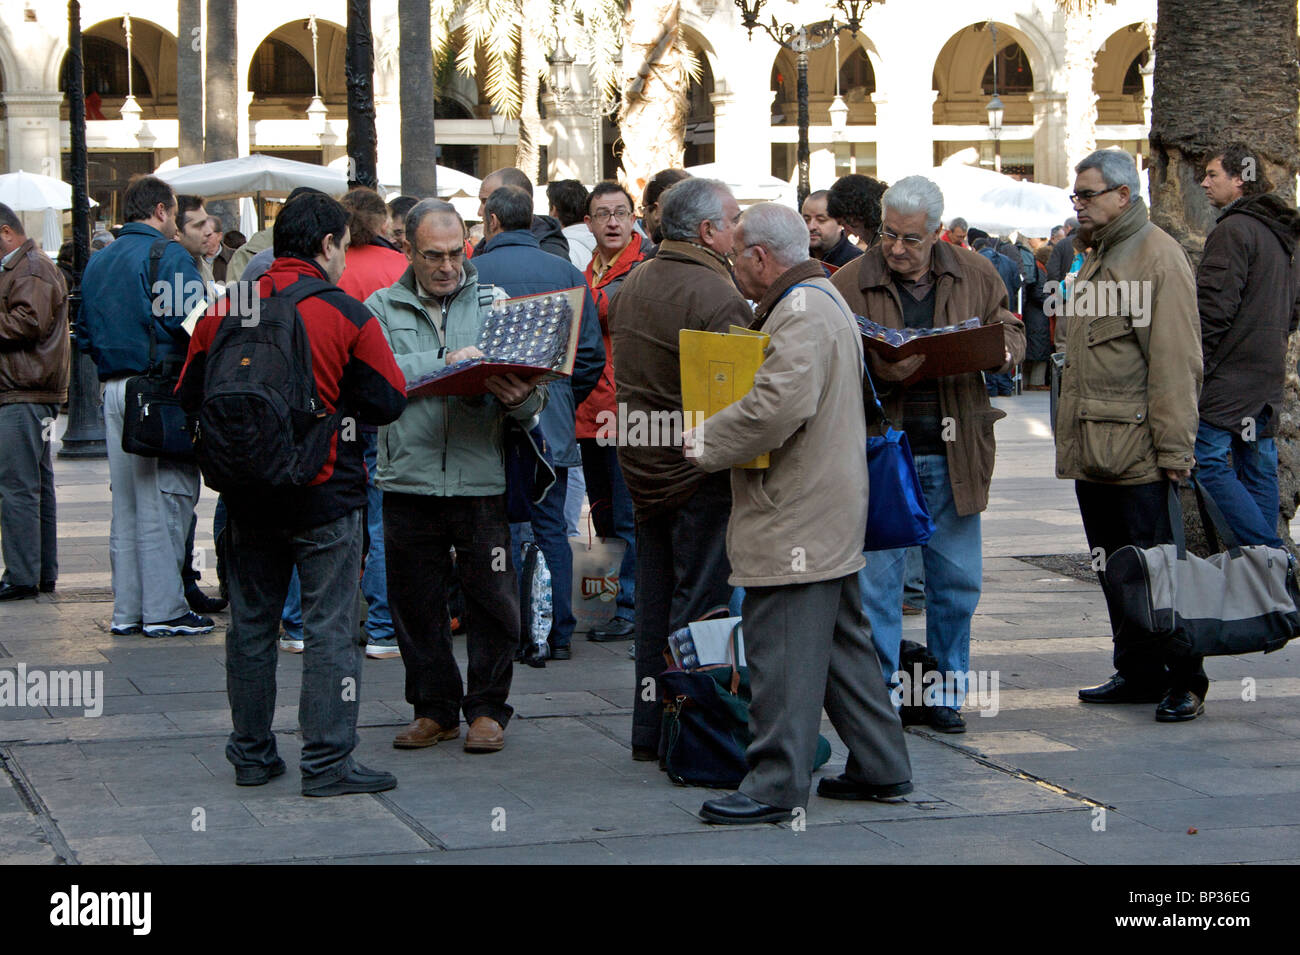 Coin enthusiasts and collectors of cava caps meet each Sunday at the coin and medal market in Placa Reial in Barcelona - Stock Image